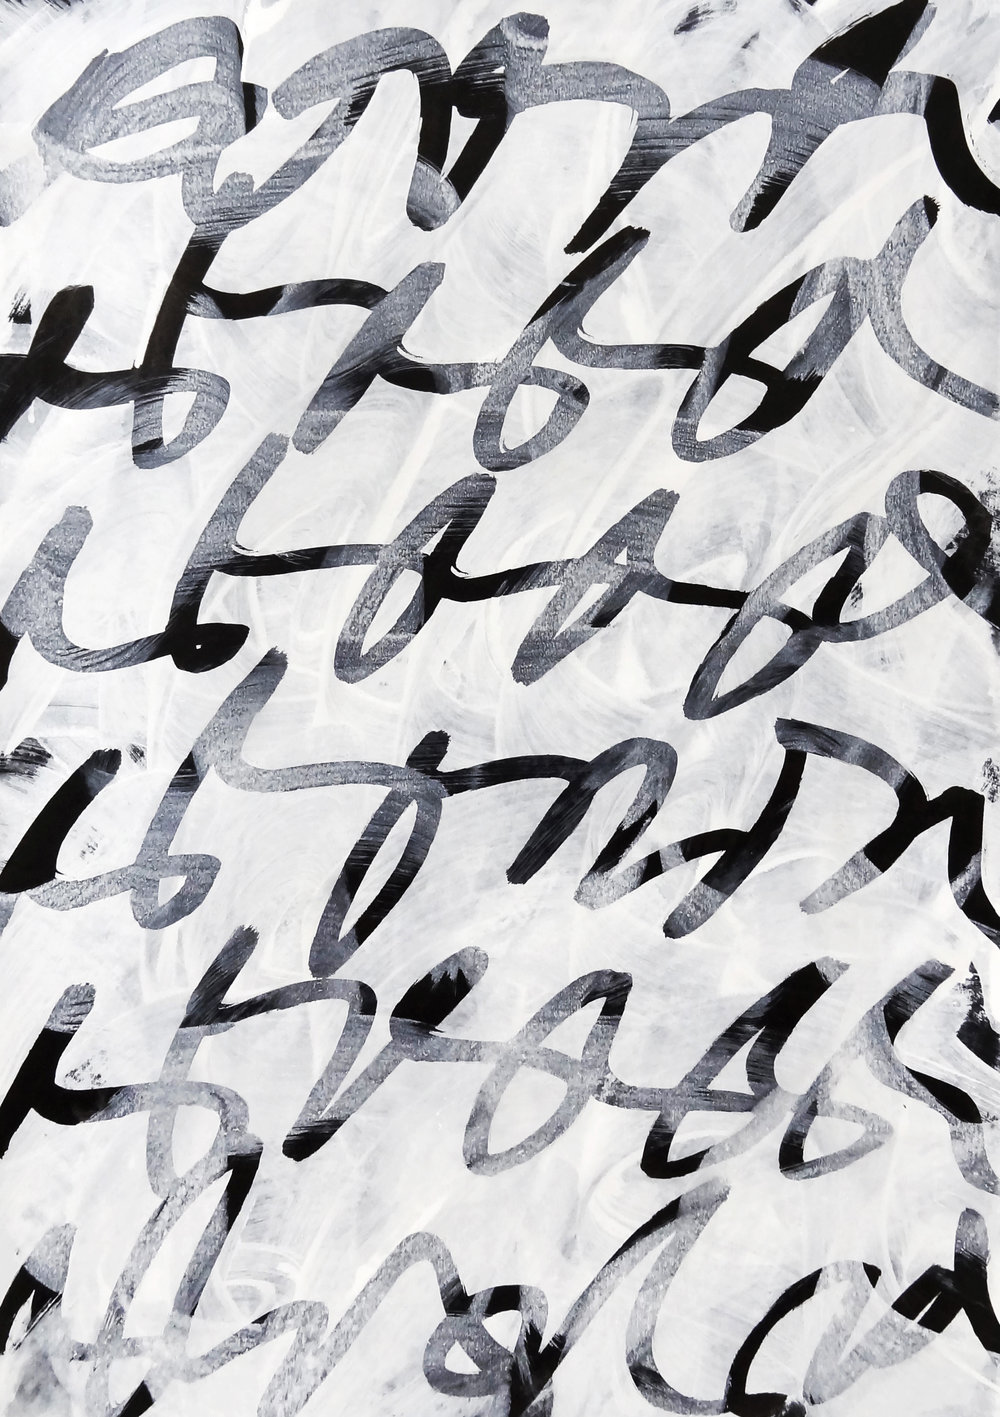 Untitled, 2018 calligraphy ink on paper 42,0 x 29,7 cm (39-18)